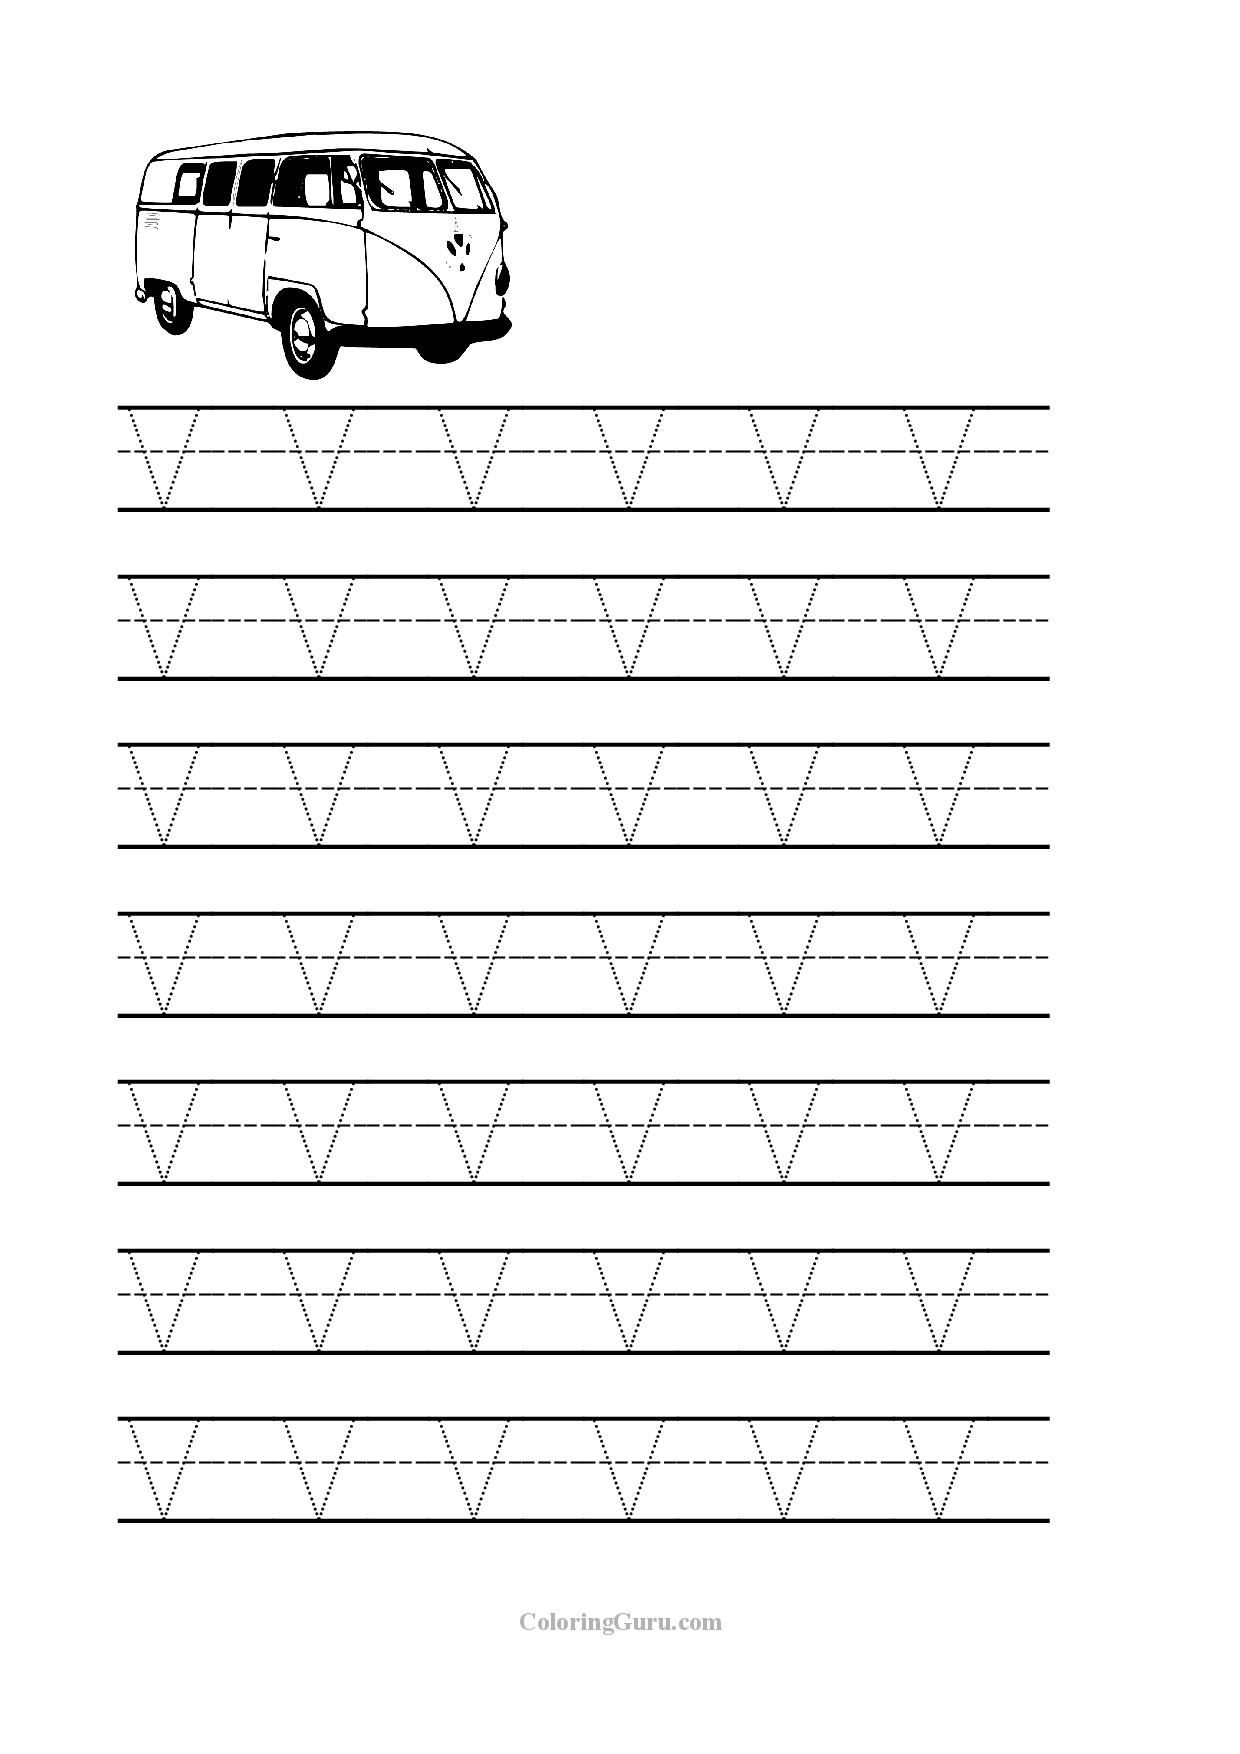 free printable tracing letter v worksheets for preschool abc 123 pre k letter v worksheets. Black Bedroom Furniture Sets. Home Design Ideas